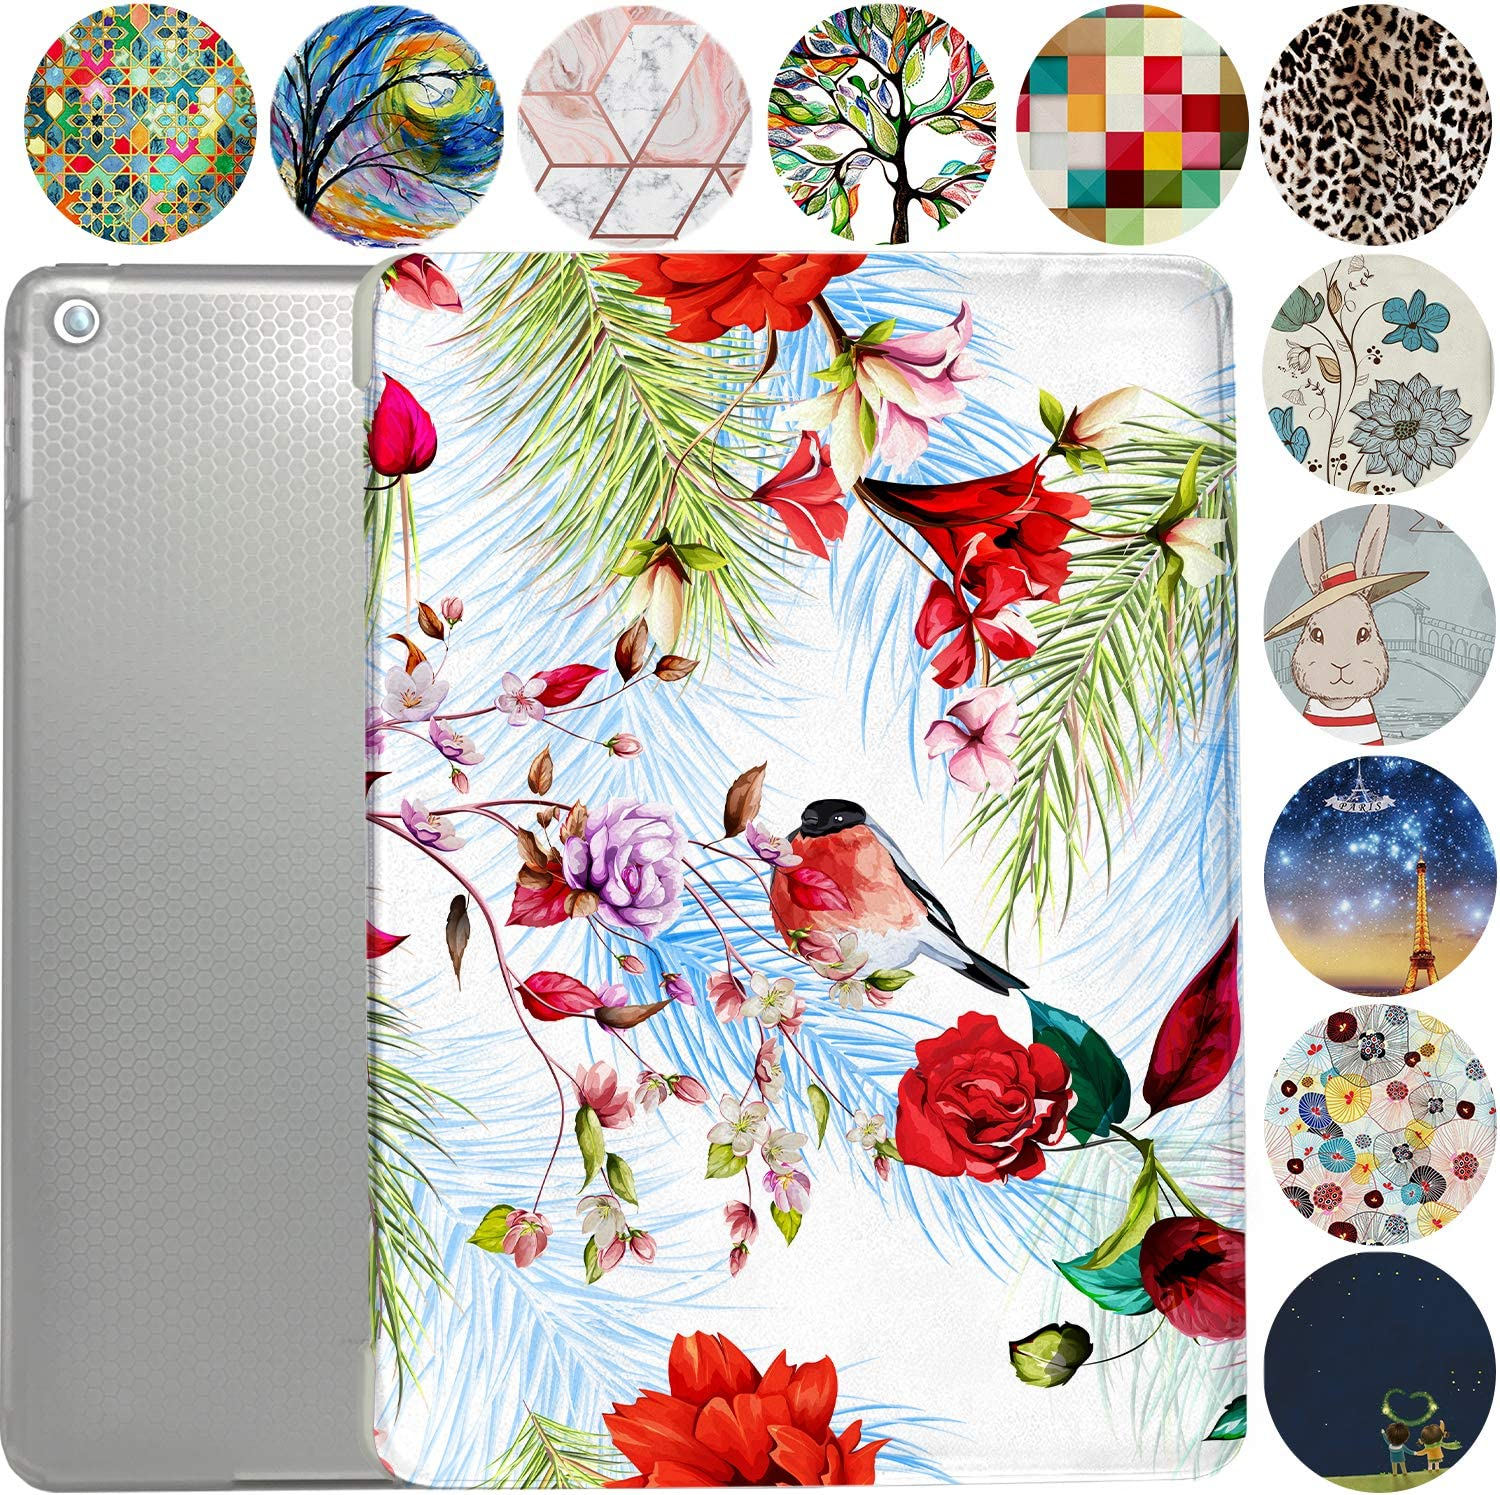 "iPad 9.7 Case 2013 iPad Air 1st Generation Slim Smart Protective Cover with Soft TPU Honeycomb Clear Back & Viewing/Typing Stand for iPad 9.7"" Air 1 Gen Auto Sleep/Wake Printed- Birds & Flowers"